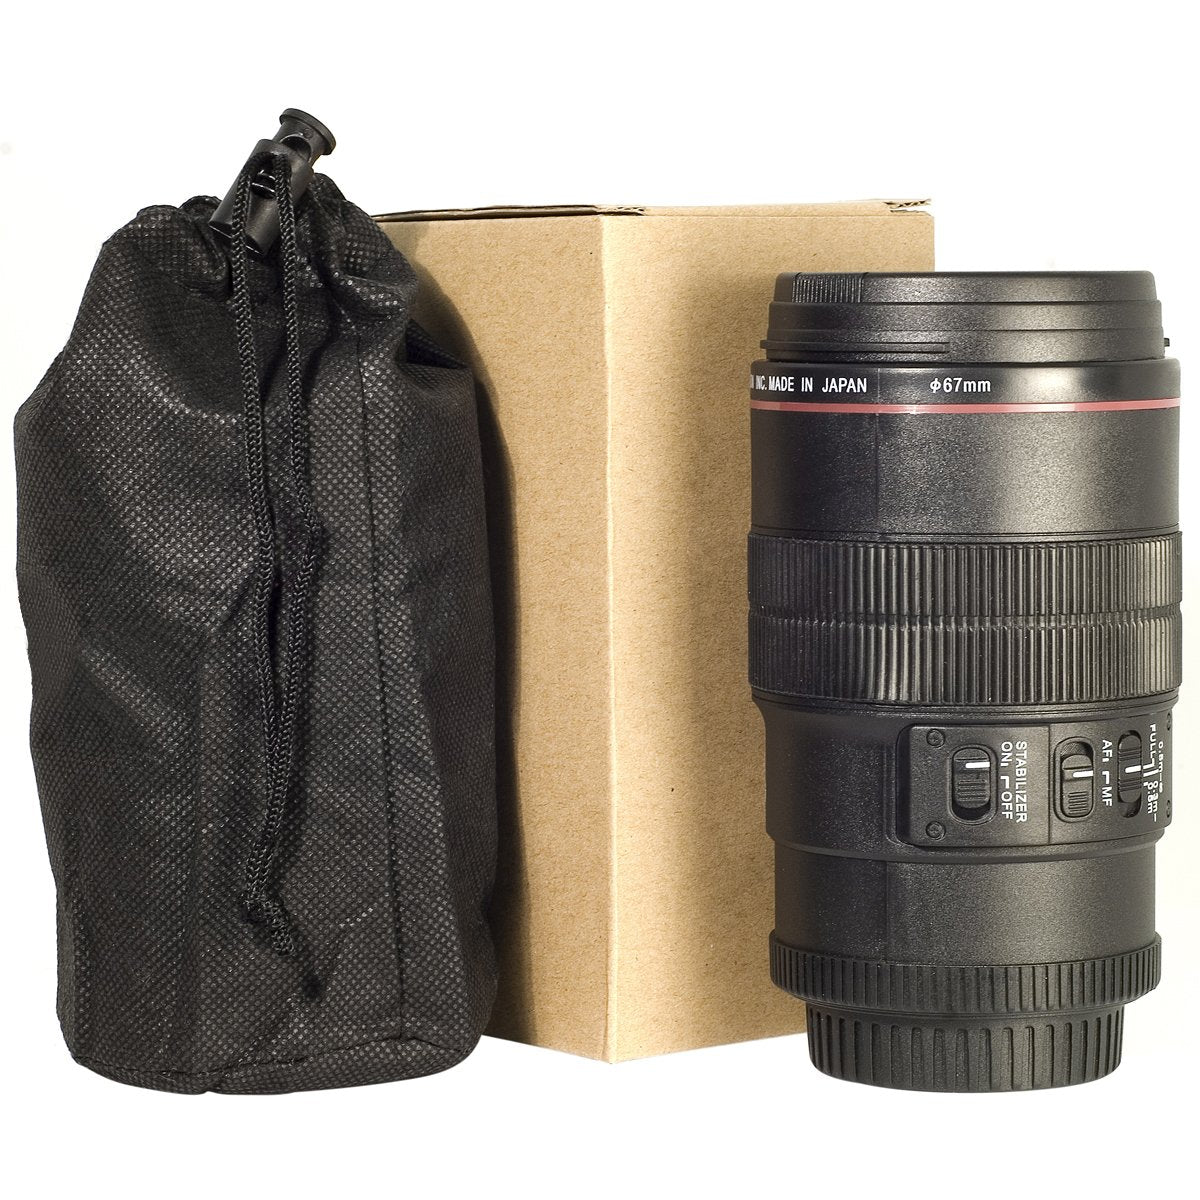 OEM EF Macro 100 mm Thermos Travel Camera Lens Cup Mug and Bag, 350 ml